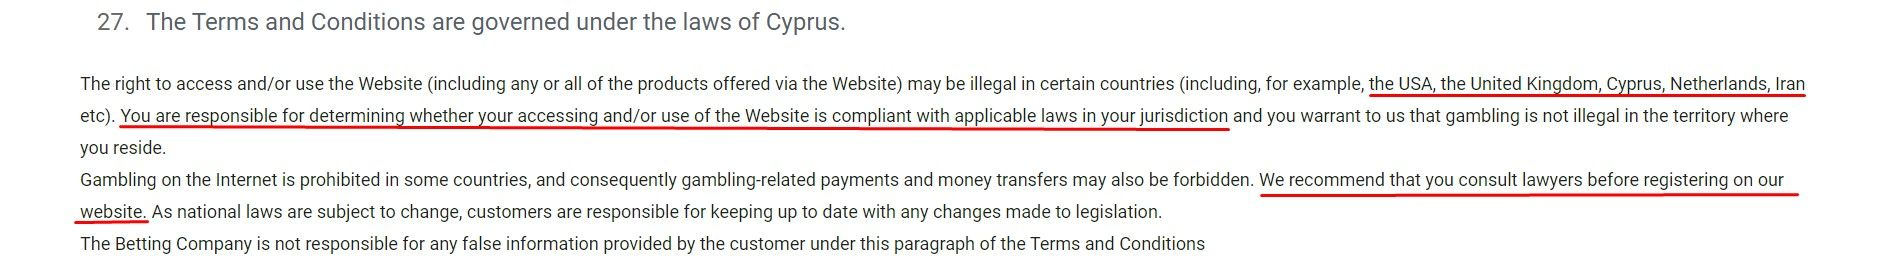 melbet terms and conditions